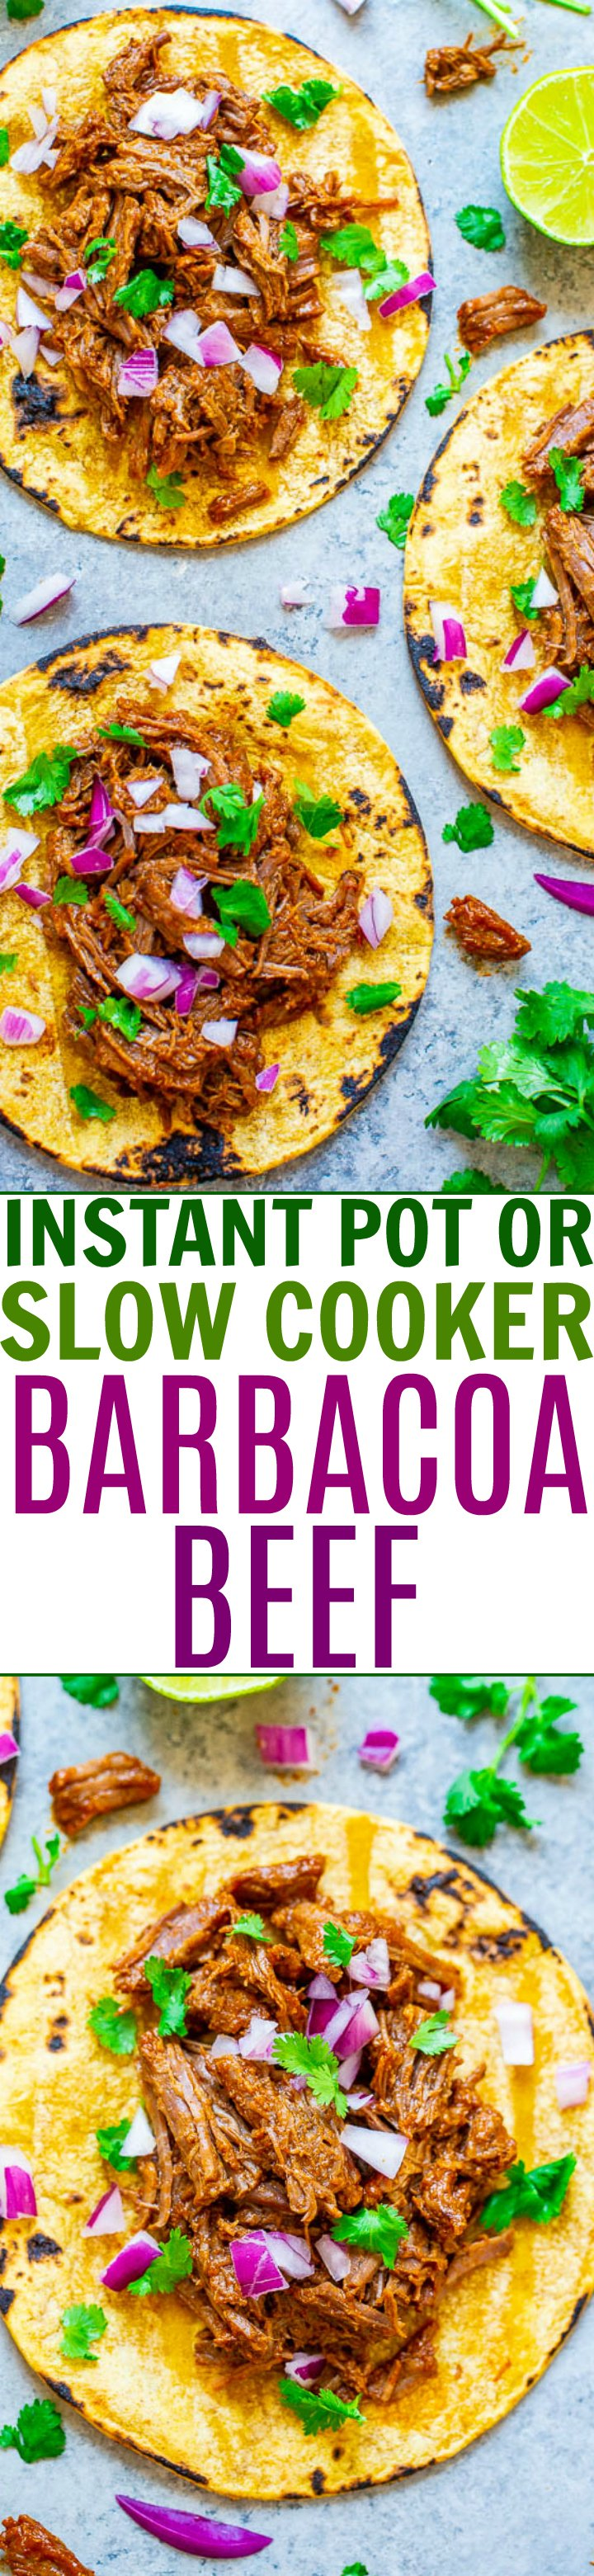 Slow Cooker or Instant Pot Barbacoa Beef — Learn how to make authentic-tasting barbacoa beef in your Instant Pot or slow cooker!! EASY, tastes BETTER than a restaurant, and is a dinnertime WINNER!!